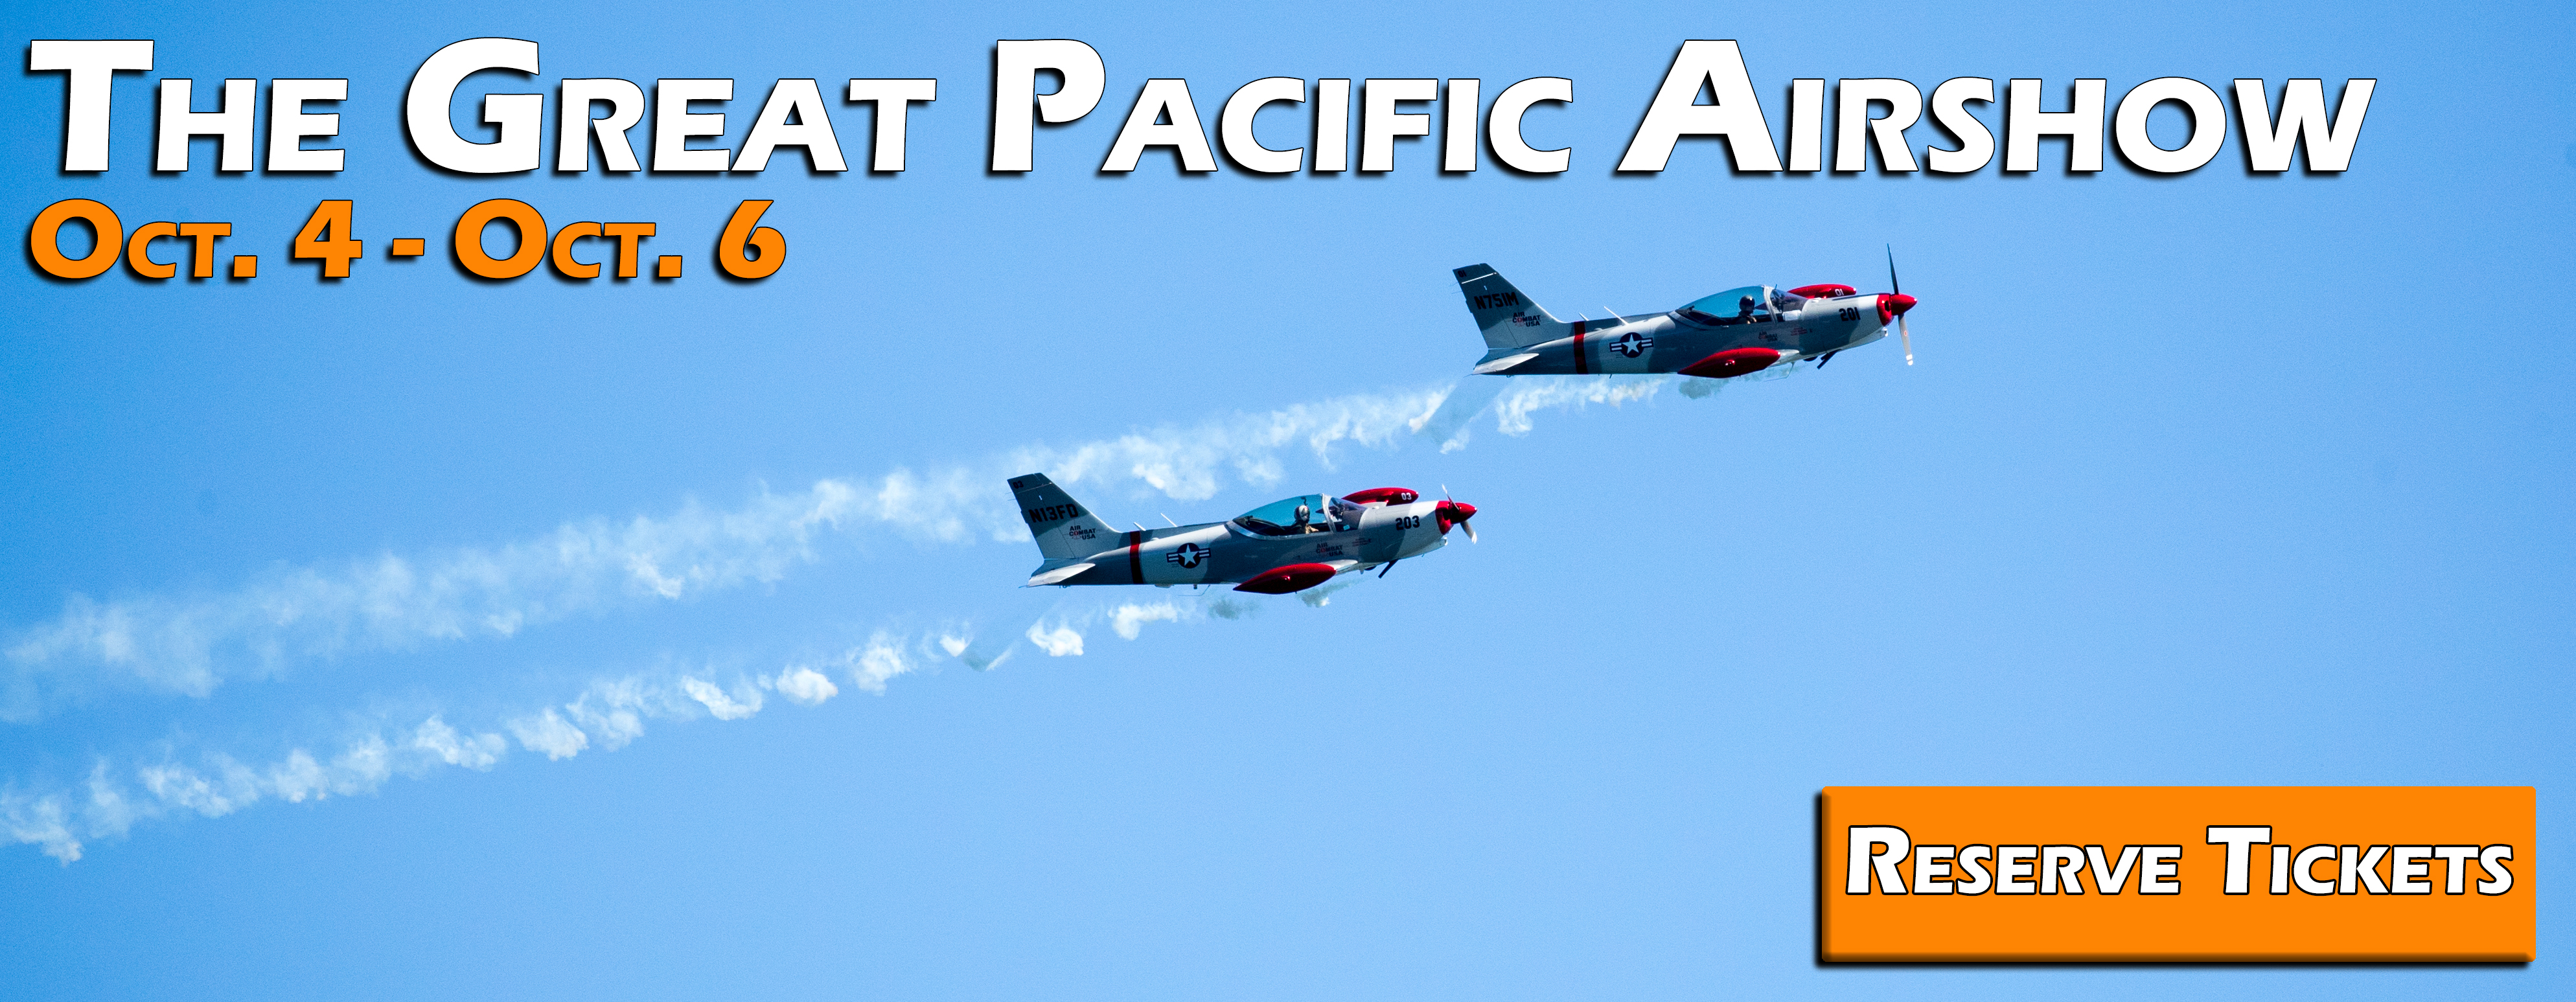 2019 Great Pacific Airshow